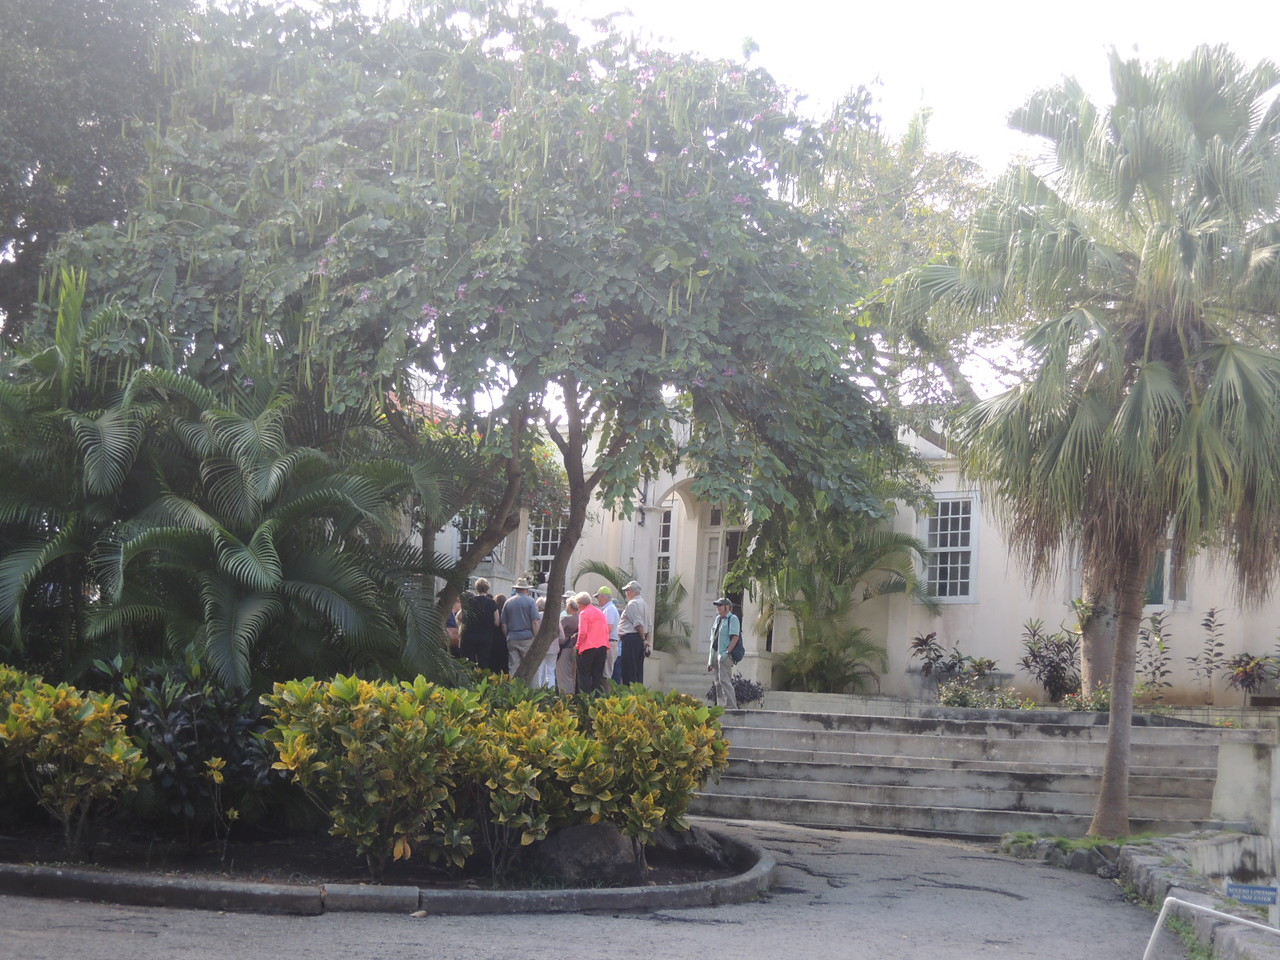 The Hemingway farm was a lovely place., on a hill overlooking Havana.